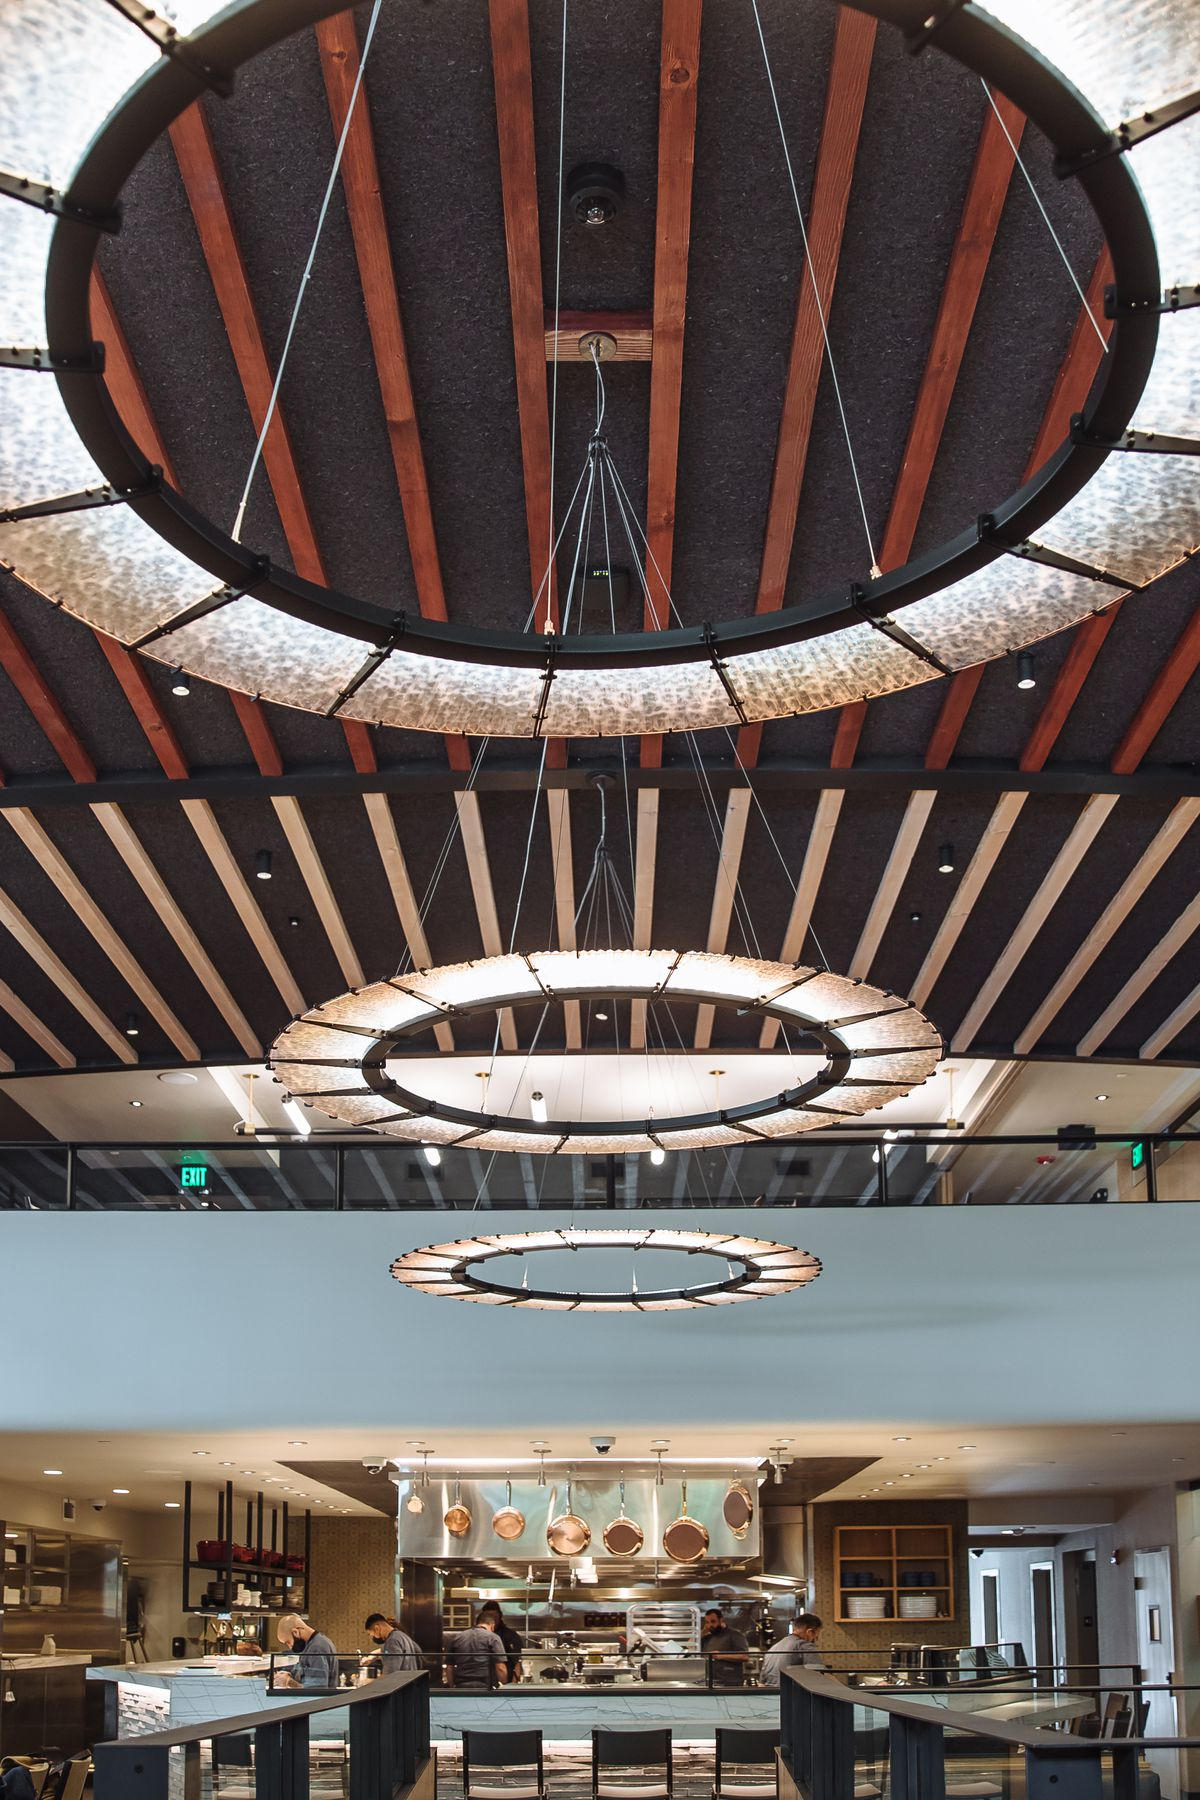 Architectural details of the Matheson, which opened in a historic building that's been renovated